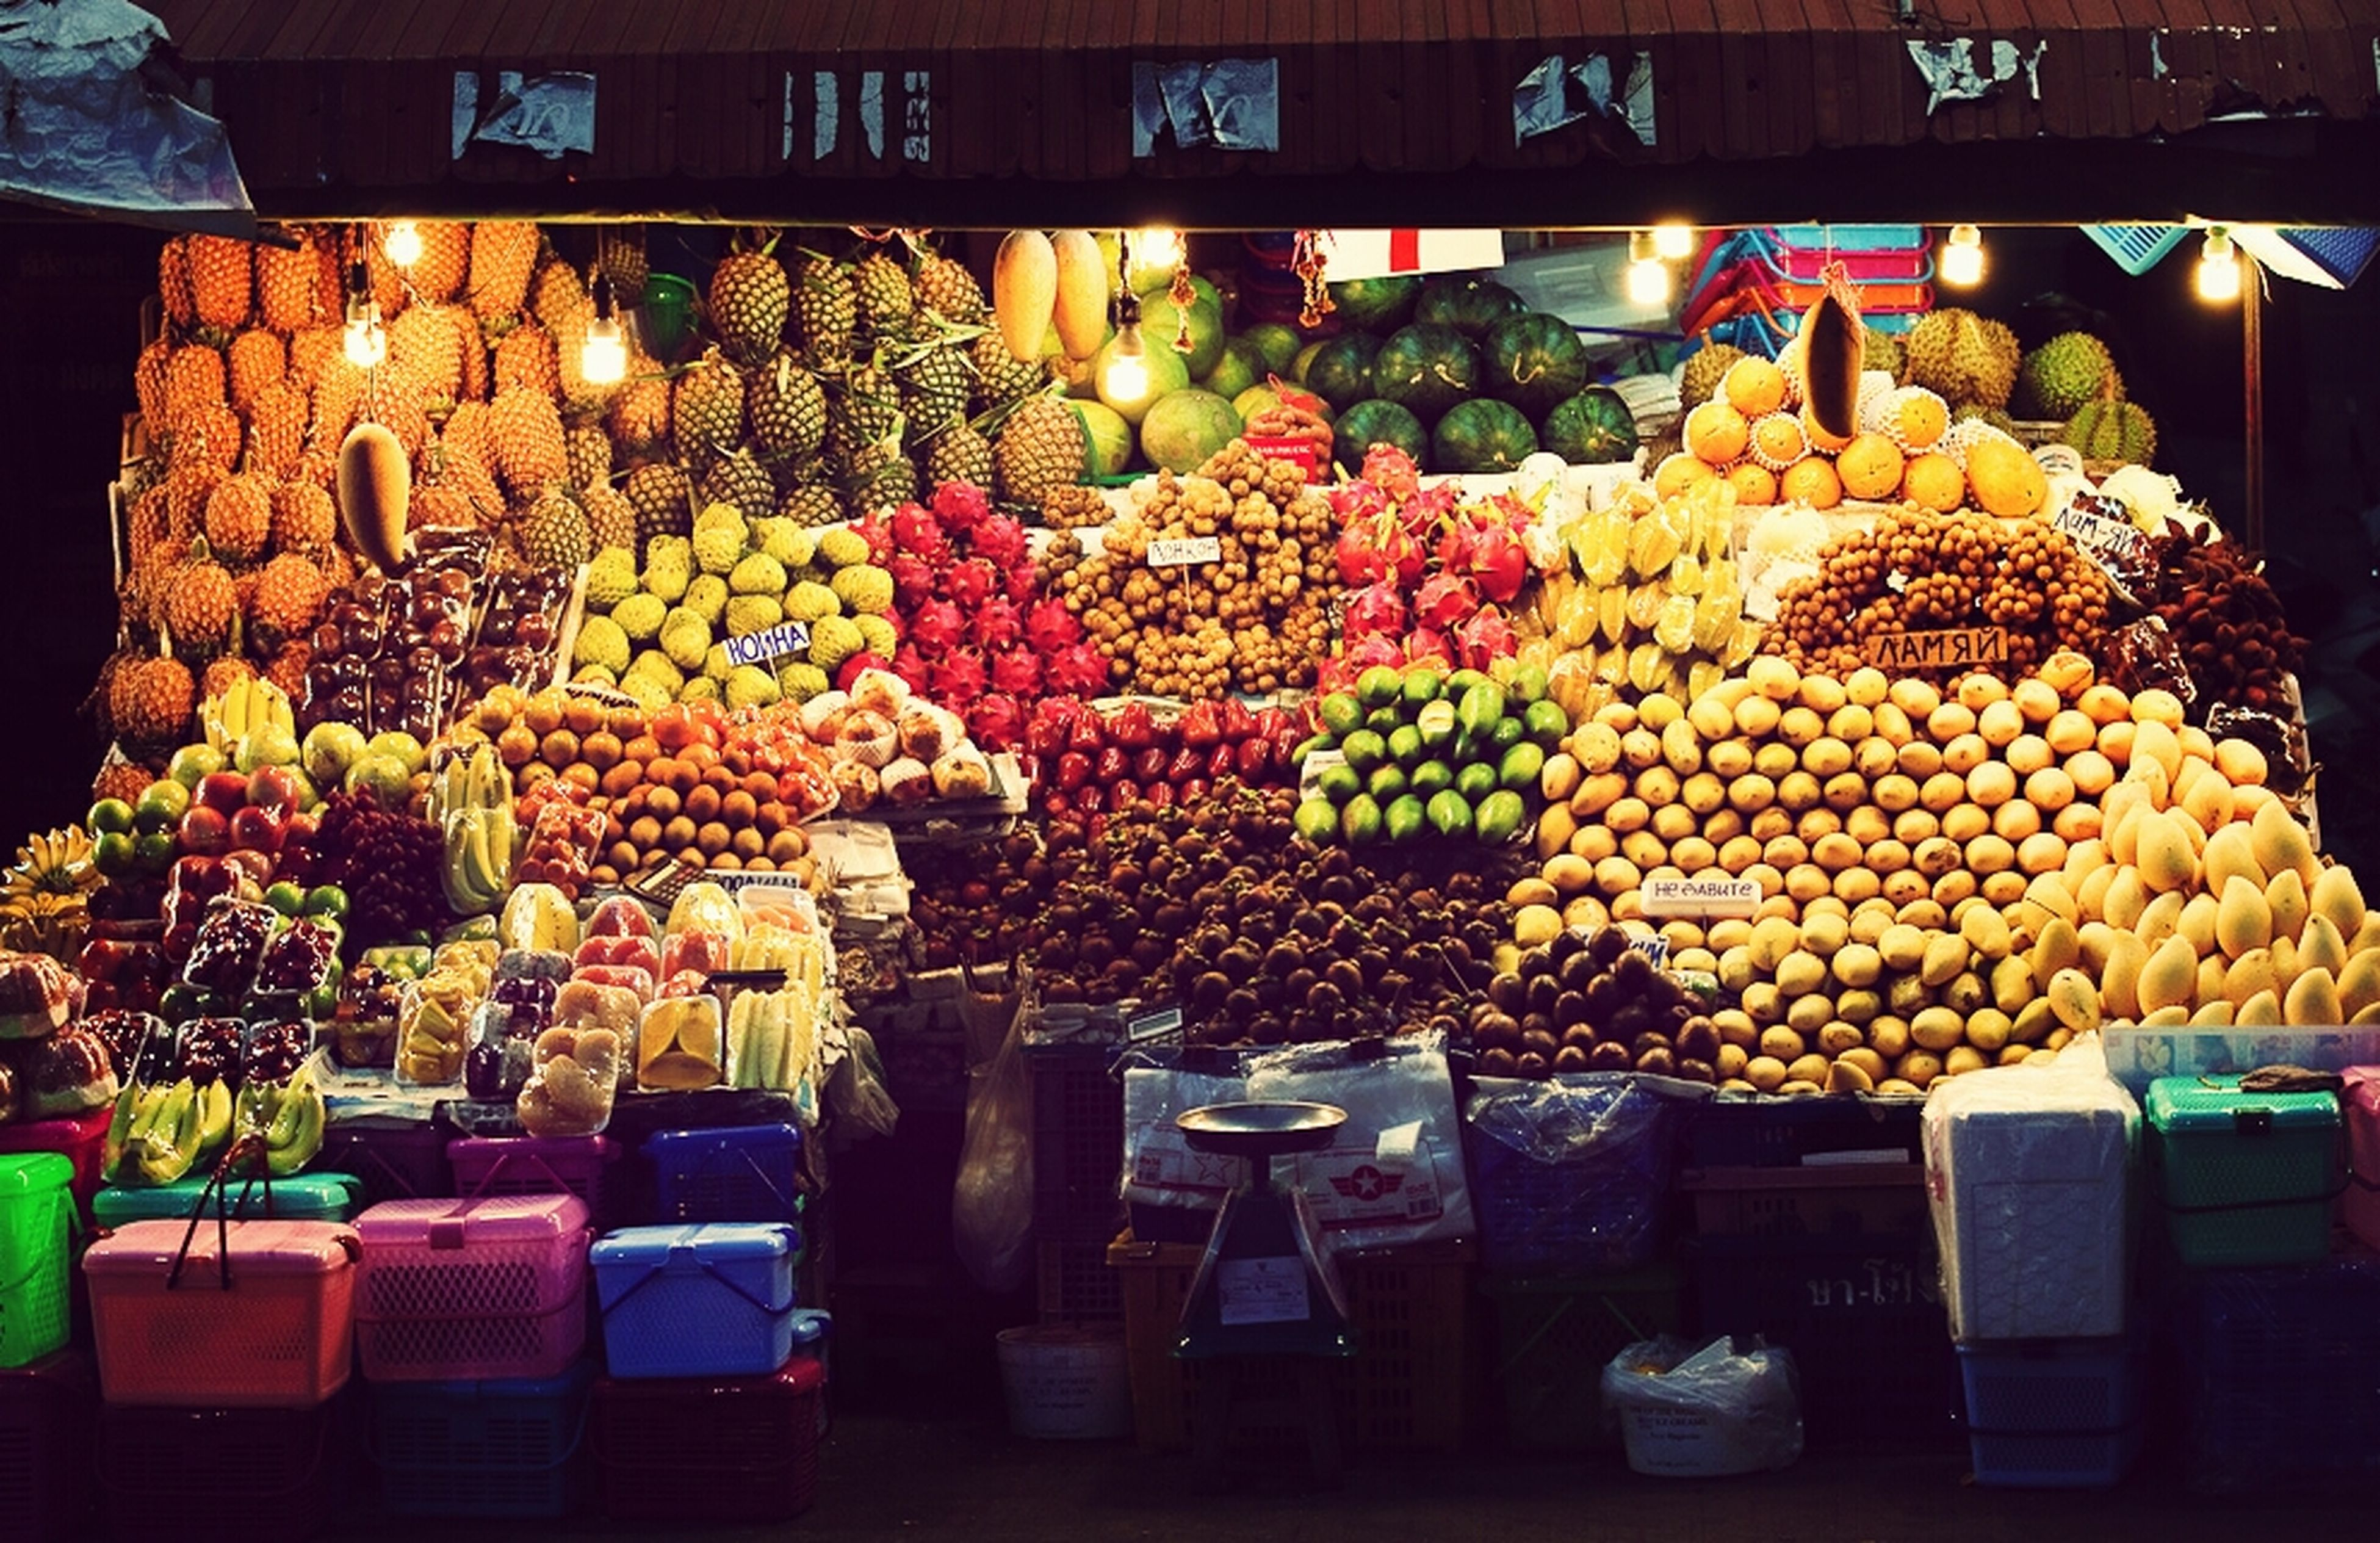 for sale, retail, variation, choice, food and drink, large group of objects, food, abundance, freshness, market stall, market, arrangement, display, indoors, healthy eating, store, still life, sale, collection, price tag